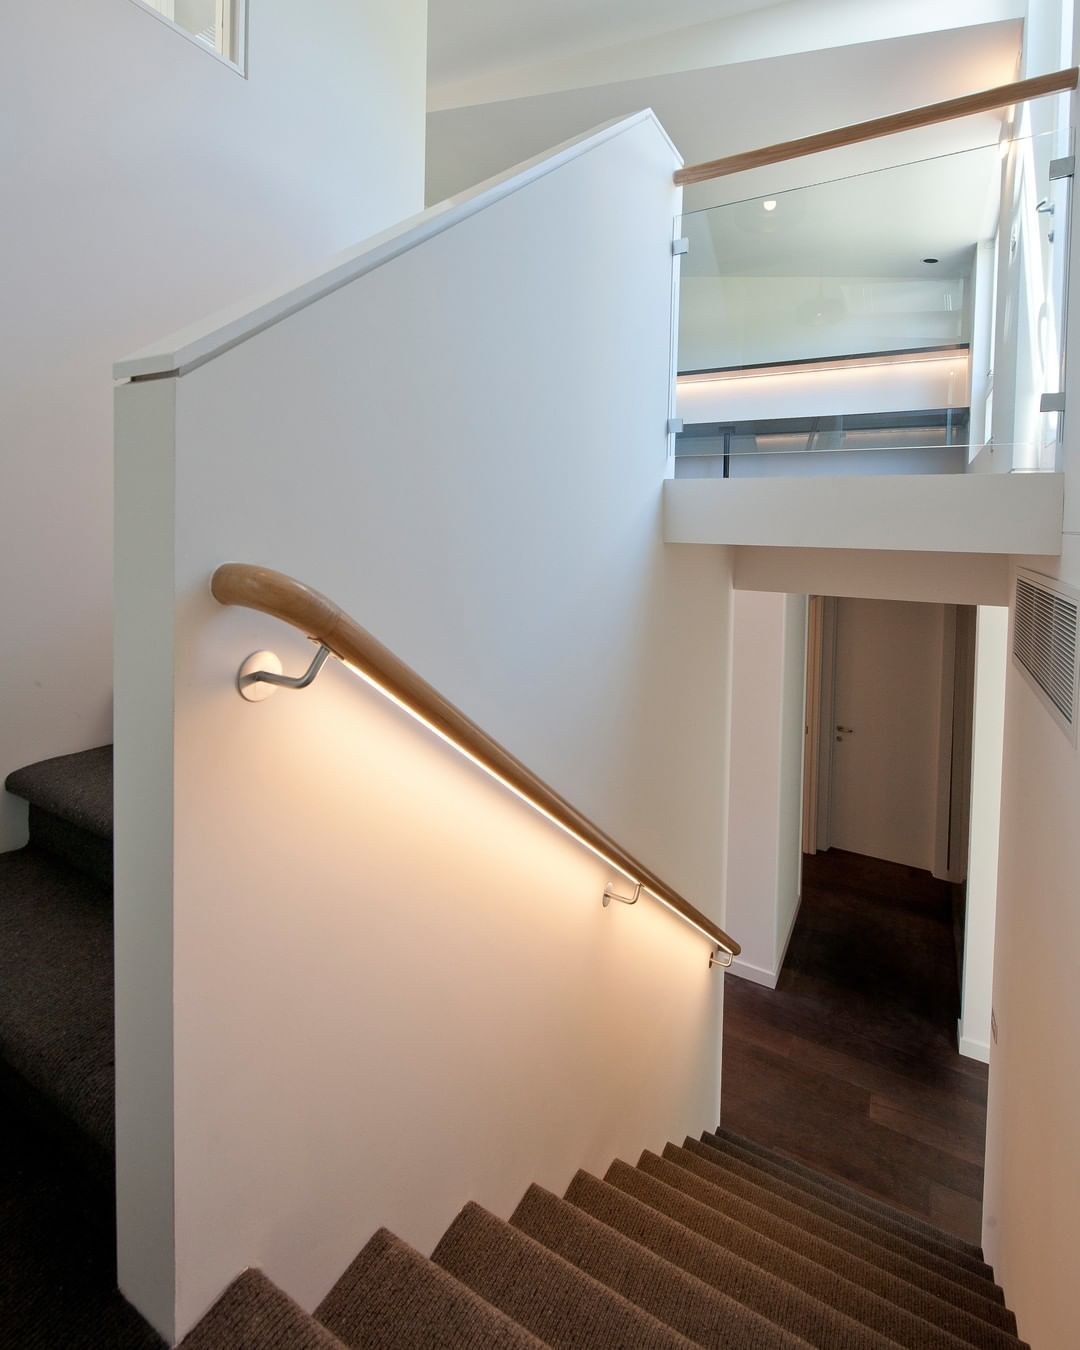 Lighting Plans Australia On Instagram It S Very Important When You Re Adding Light To A Staircase That Yo In 2020 Lighting Consultant Home Lighting Lighting Design